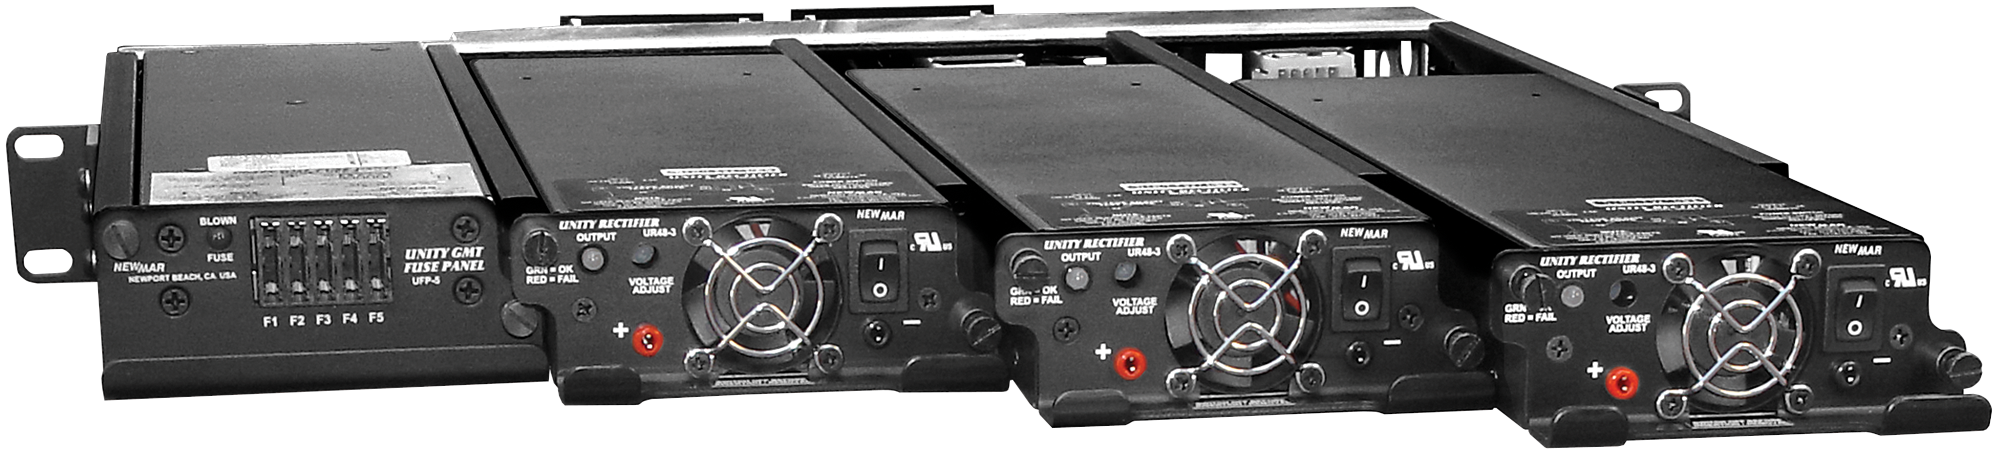 24 and 48 Volt, 150 – 450 Amps, N+1 Redundant, Rackmount DC Power System, Model Unity Rectifier System by Newmar Powering the Network